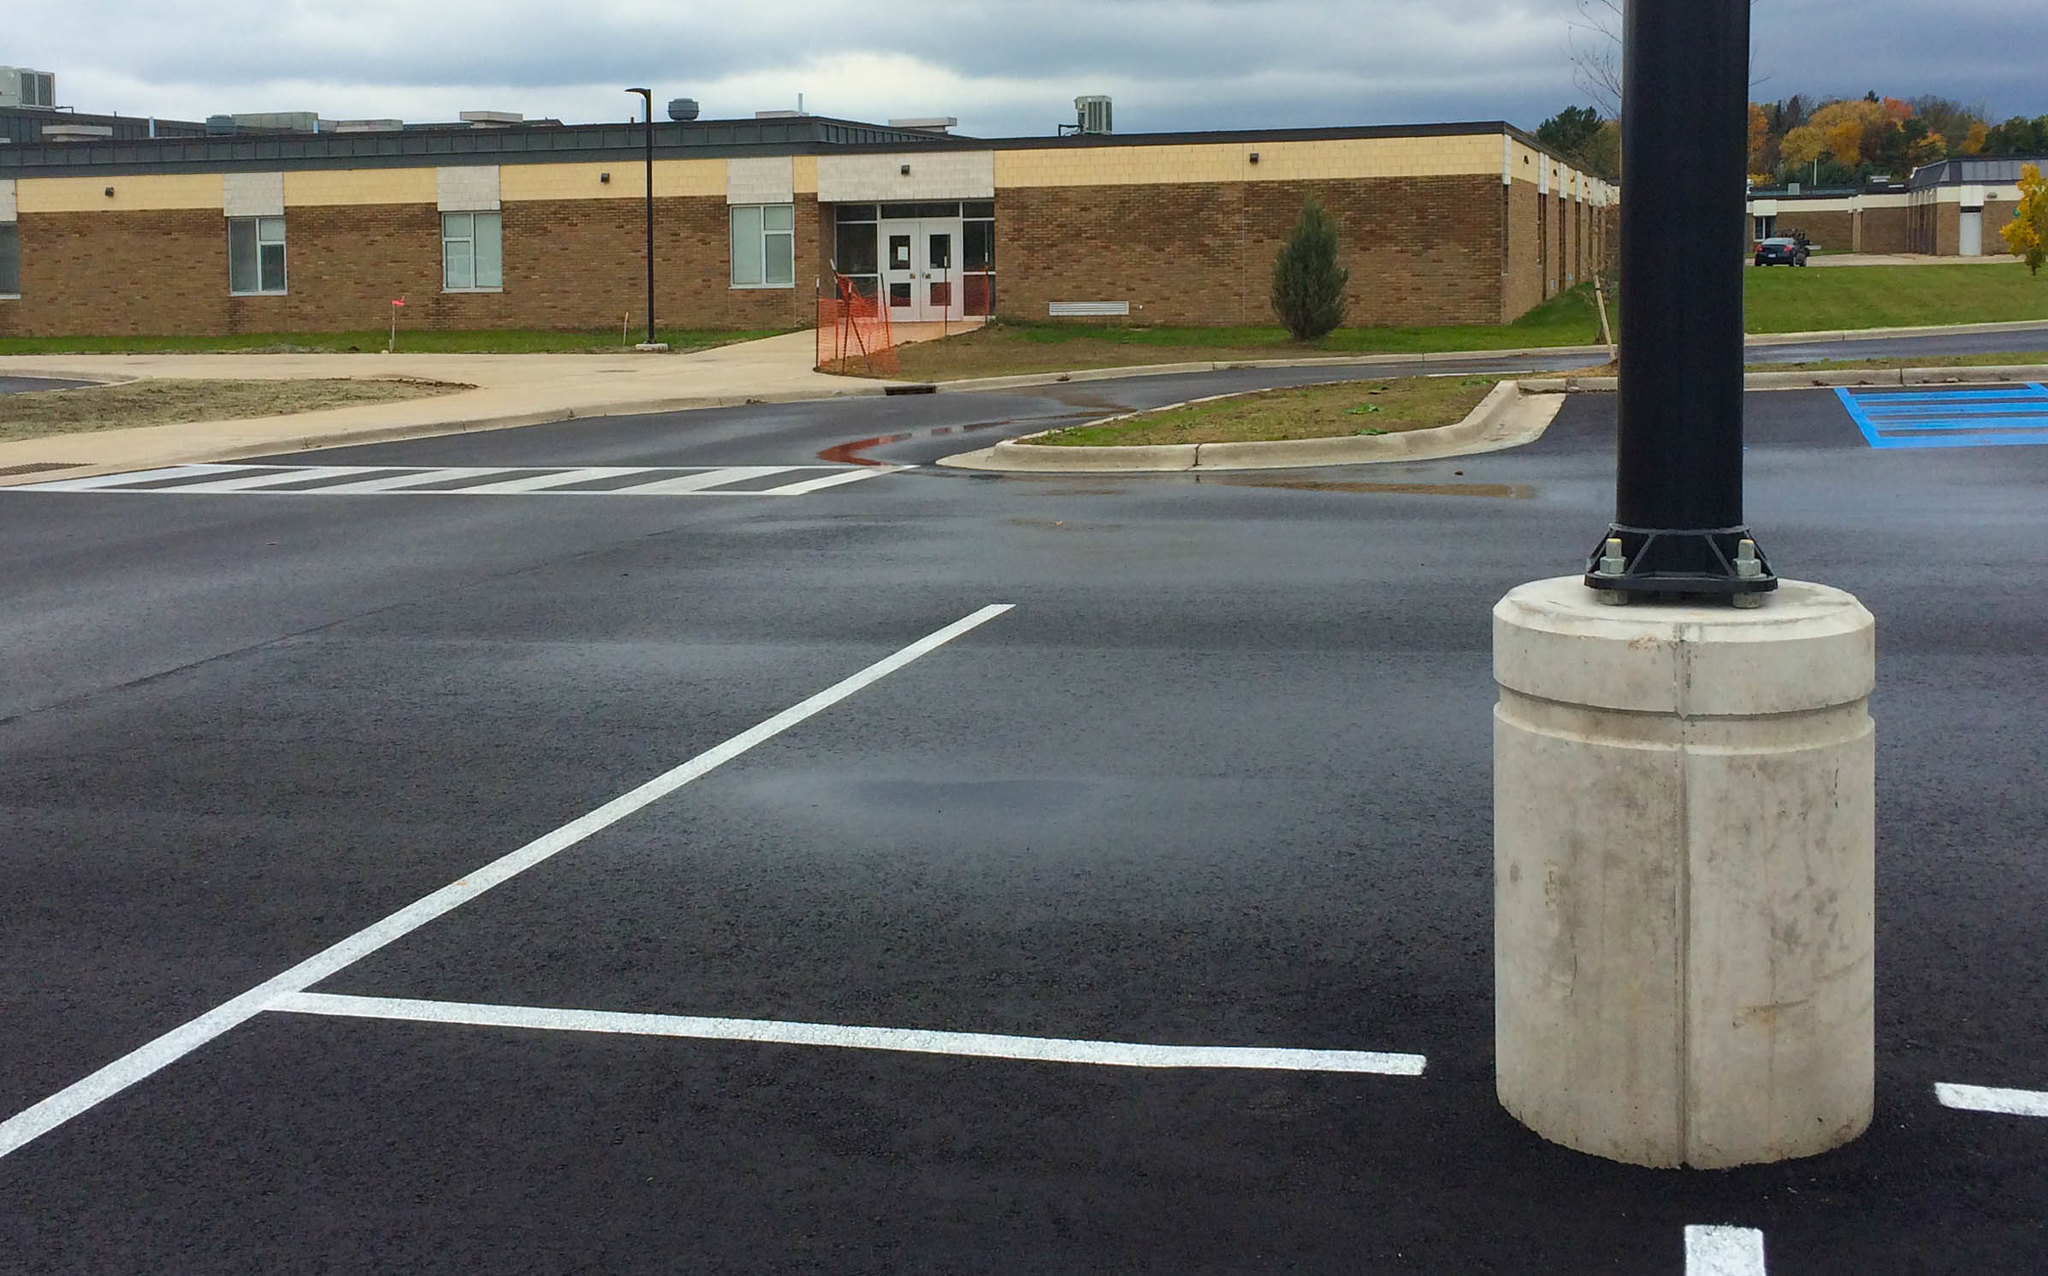 Precast light pole bases for high school parking lot renovation